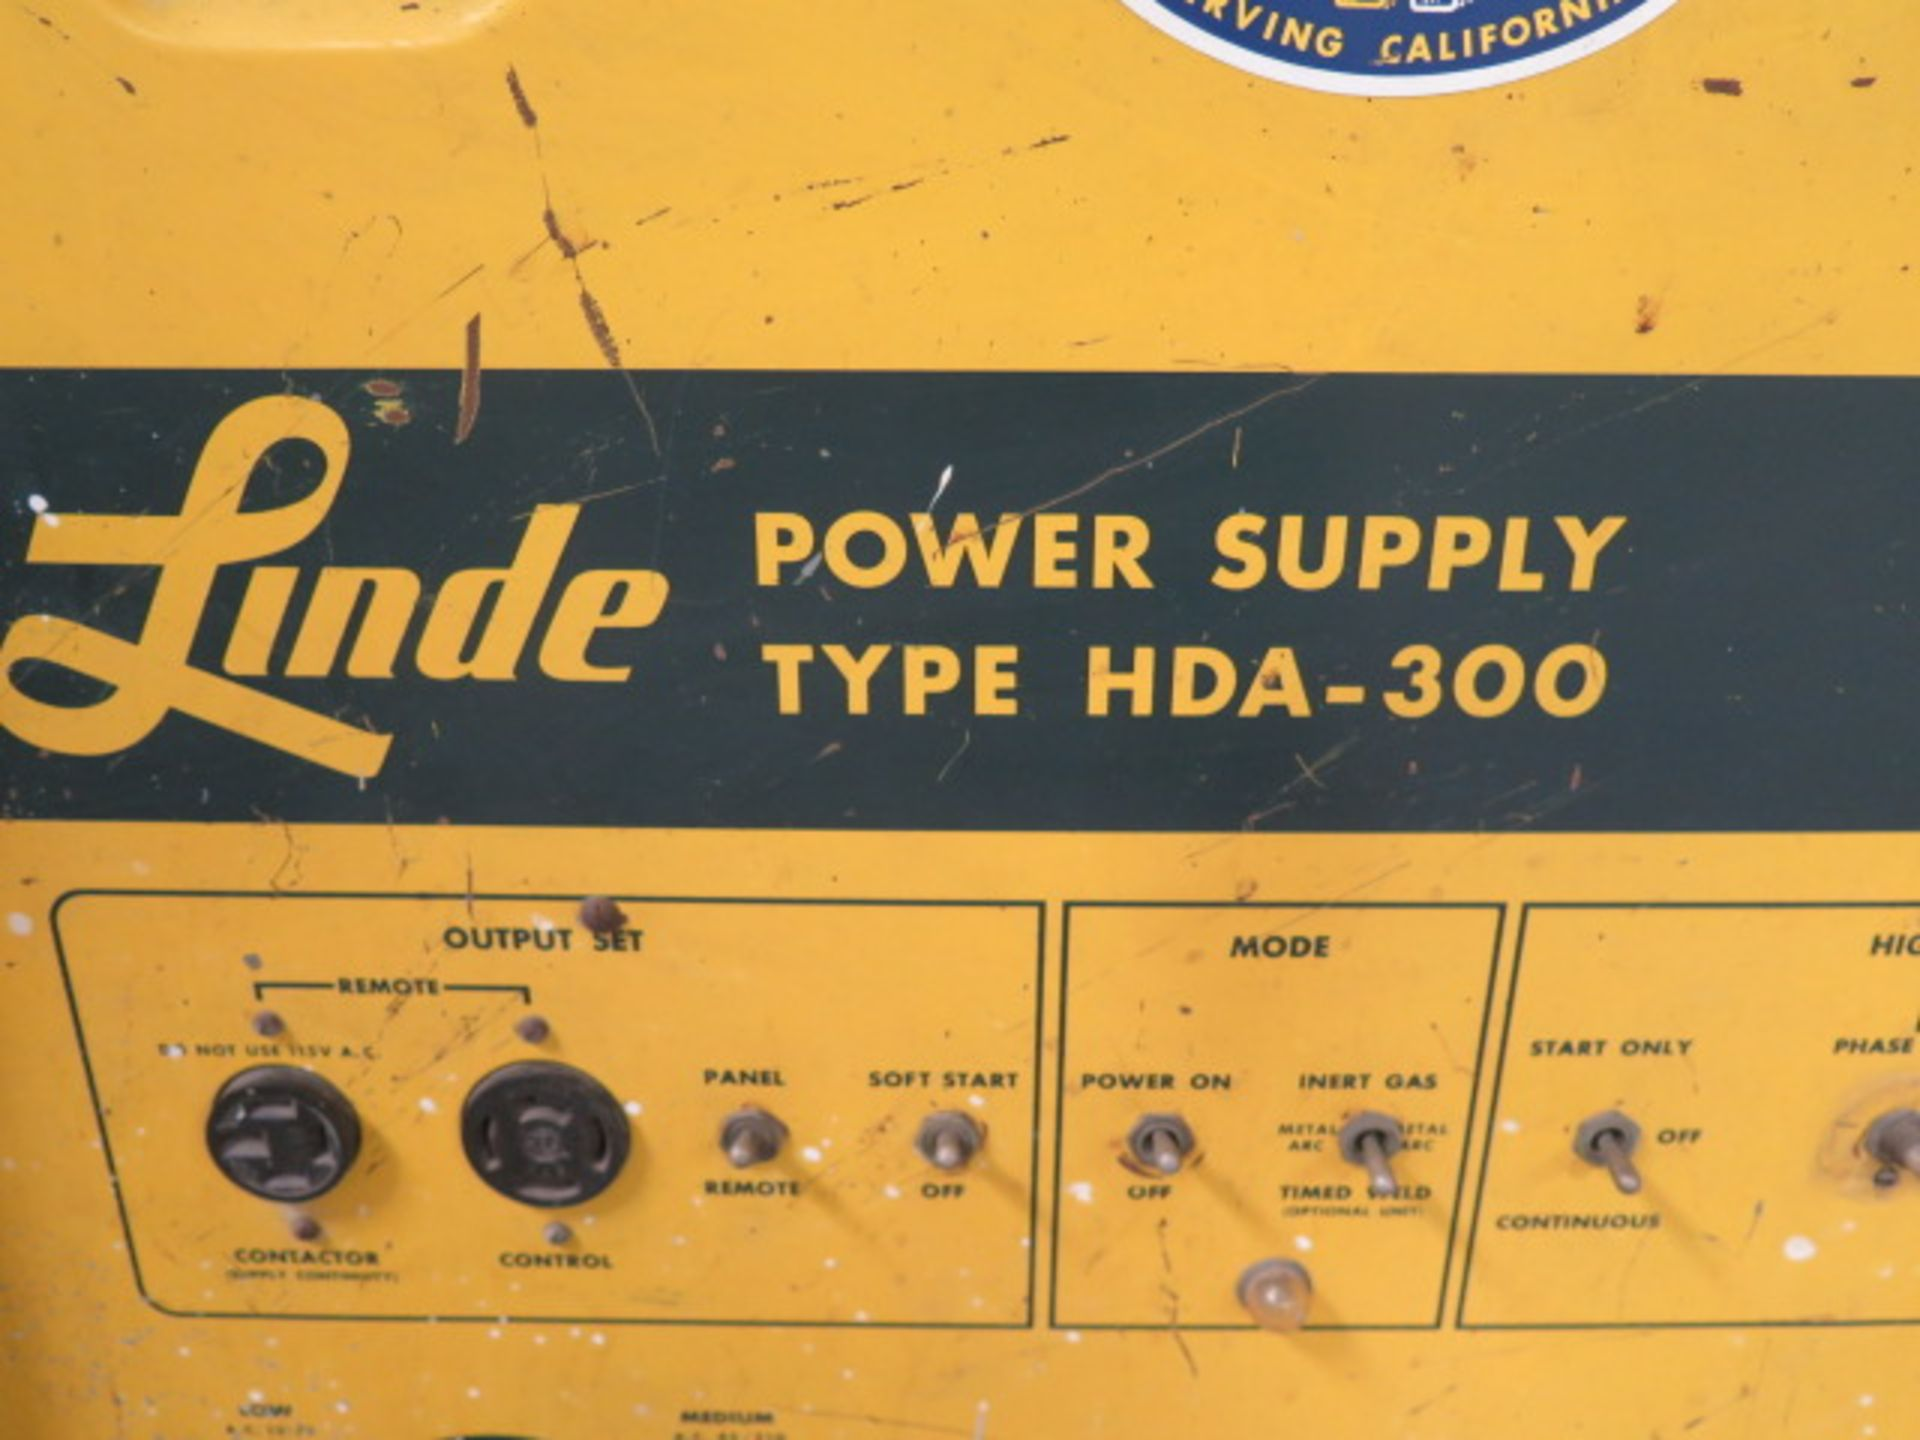 Linde HAD-300 AC/DC Arc Welding Power Source s/n C-3660800 (SOLD AS-IS - NO WARRANTY) - Image 4 of 5